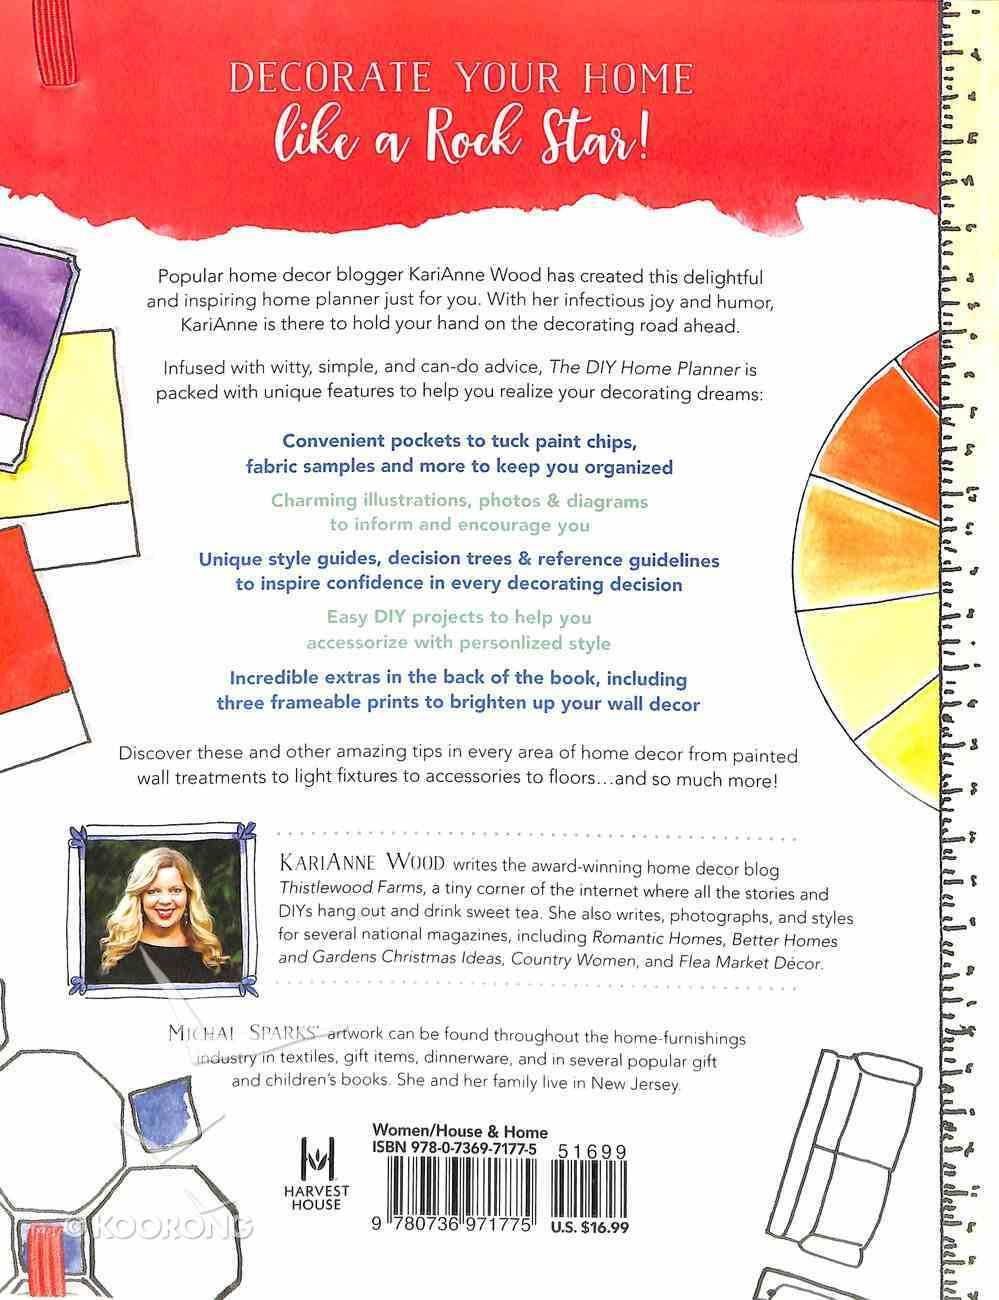 The Diy Home Planner: Practical Tips and Inspiring Ideas to Decorate It Yourself Paperback